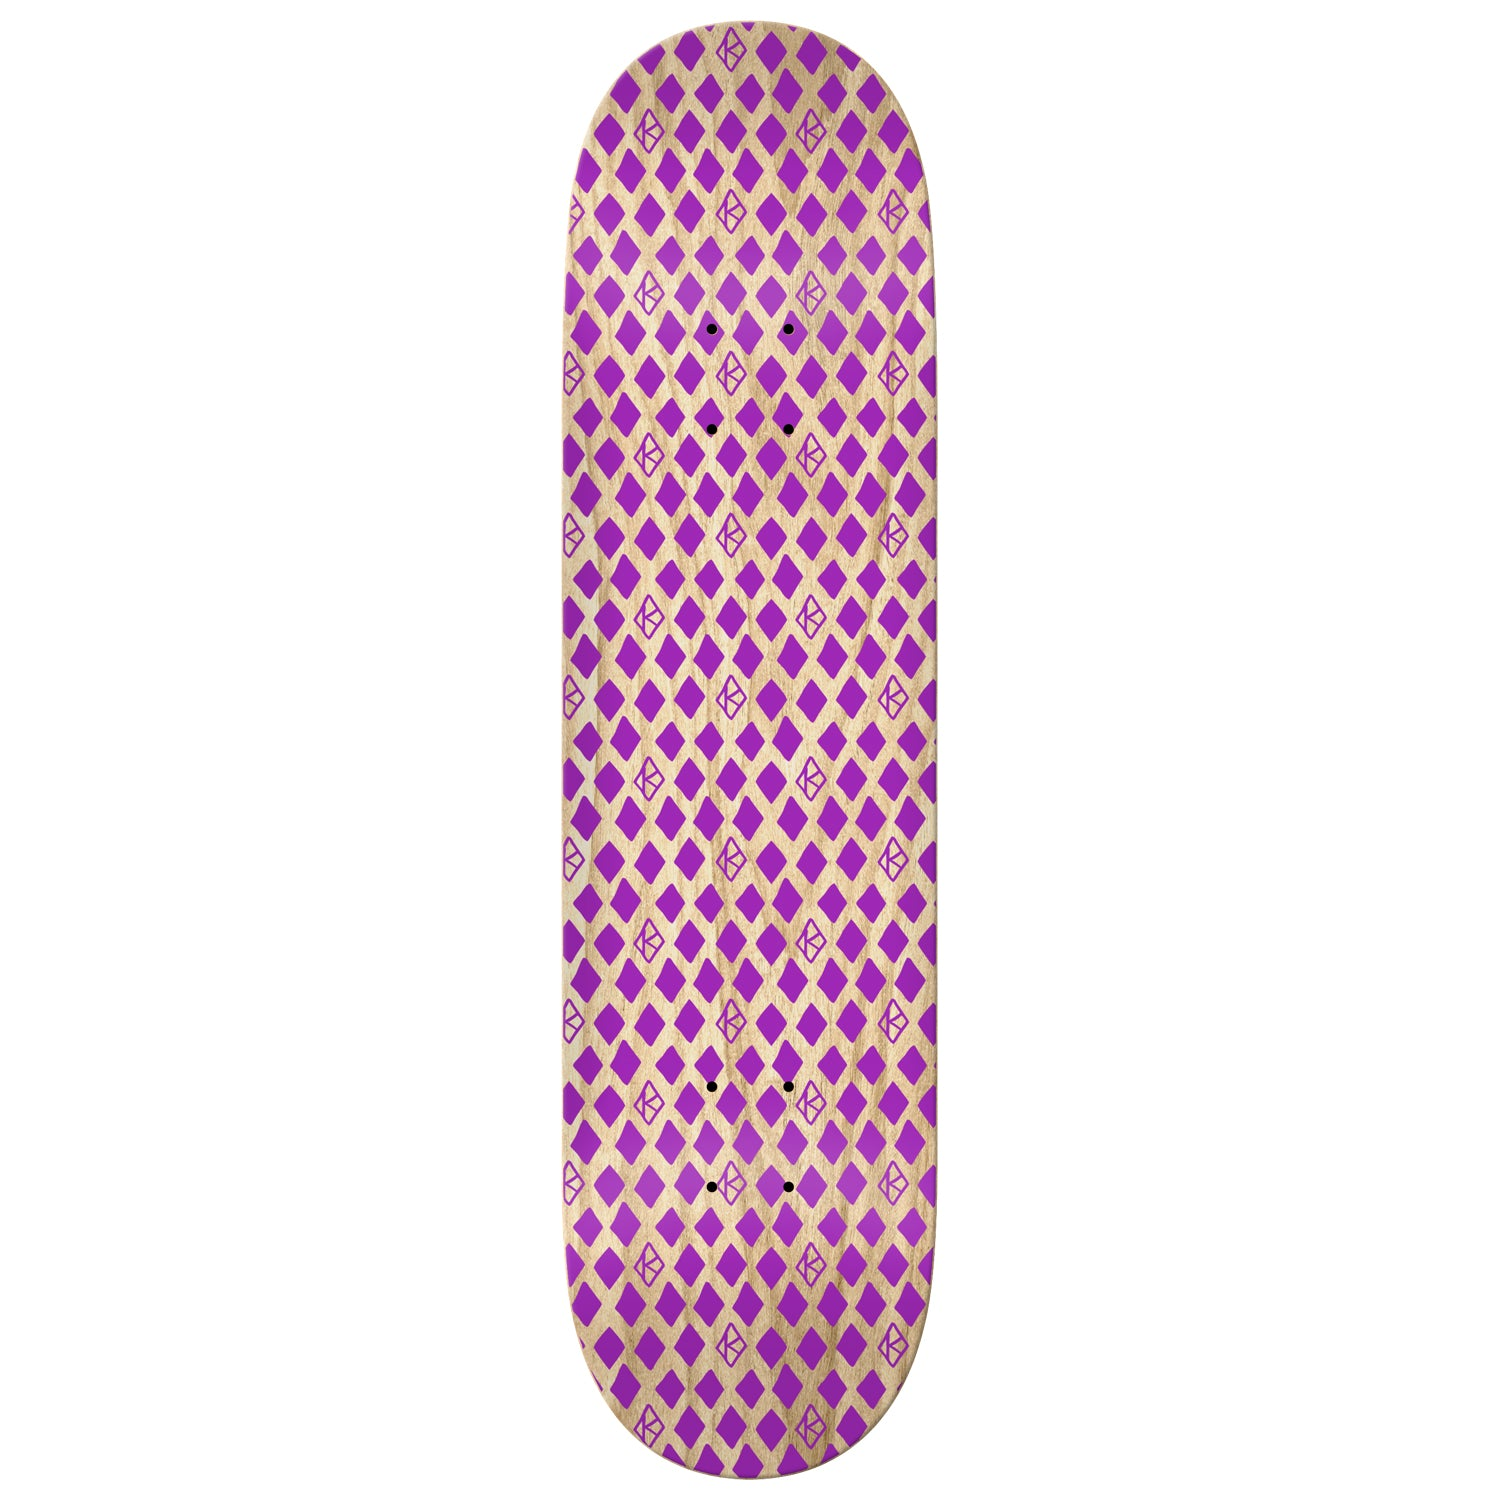 Krooked Dymonds PricePoint Deck 8.25